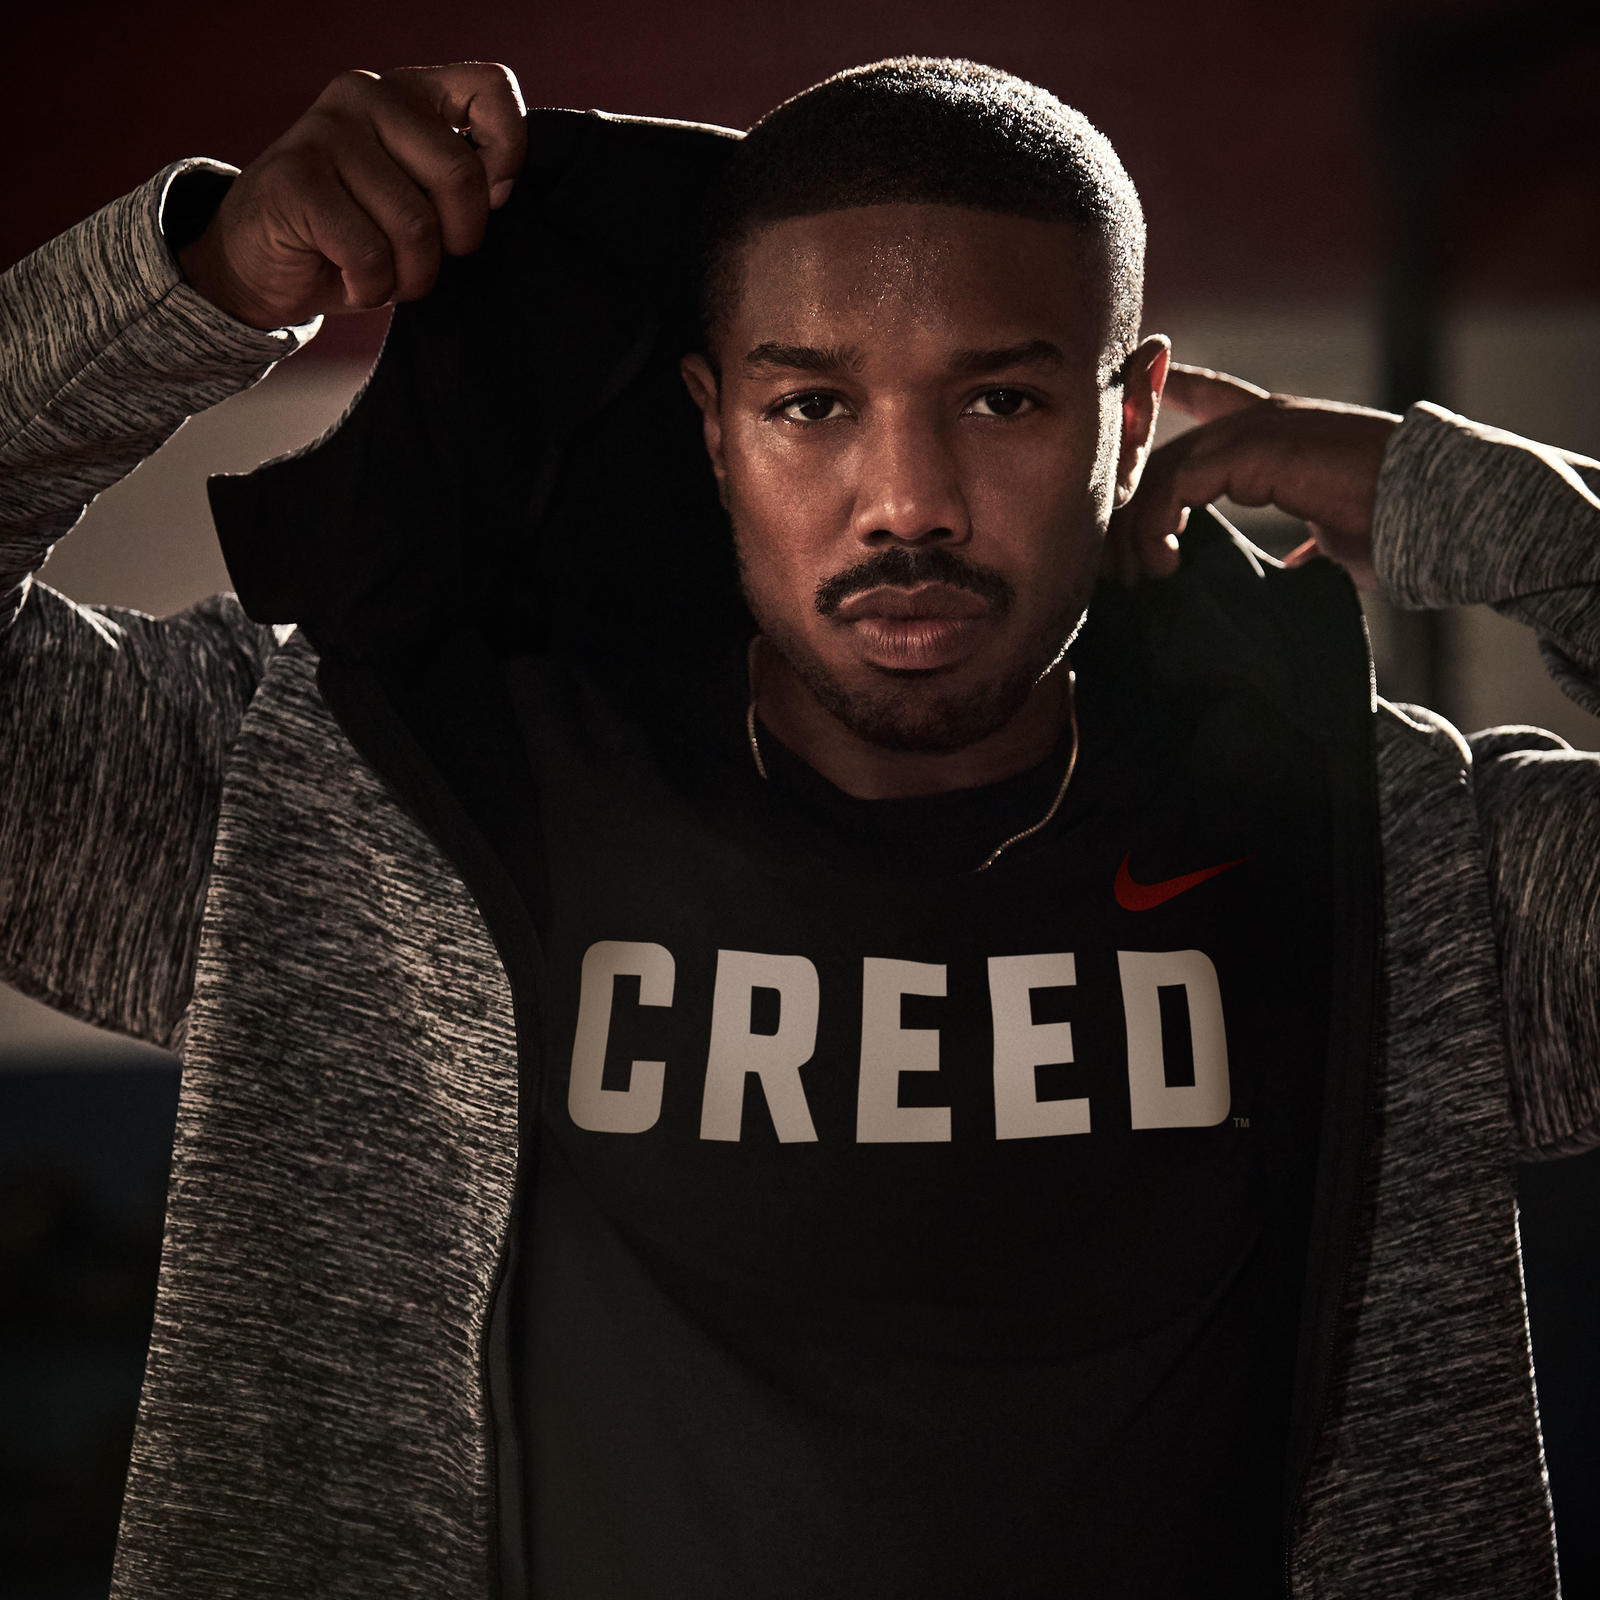 64679f9081b354 Check Out Adonis Creed s Signature Collection - DaMajority